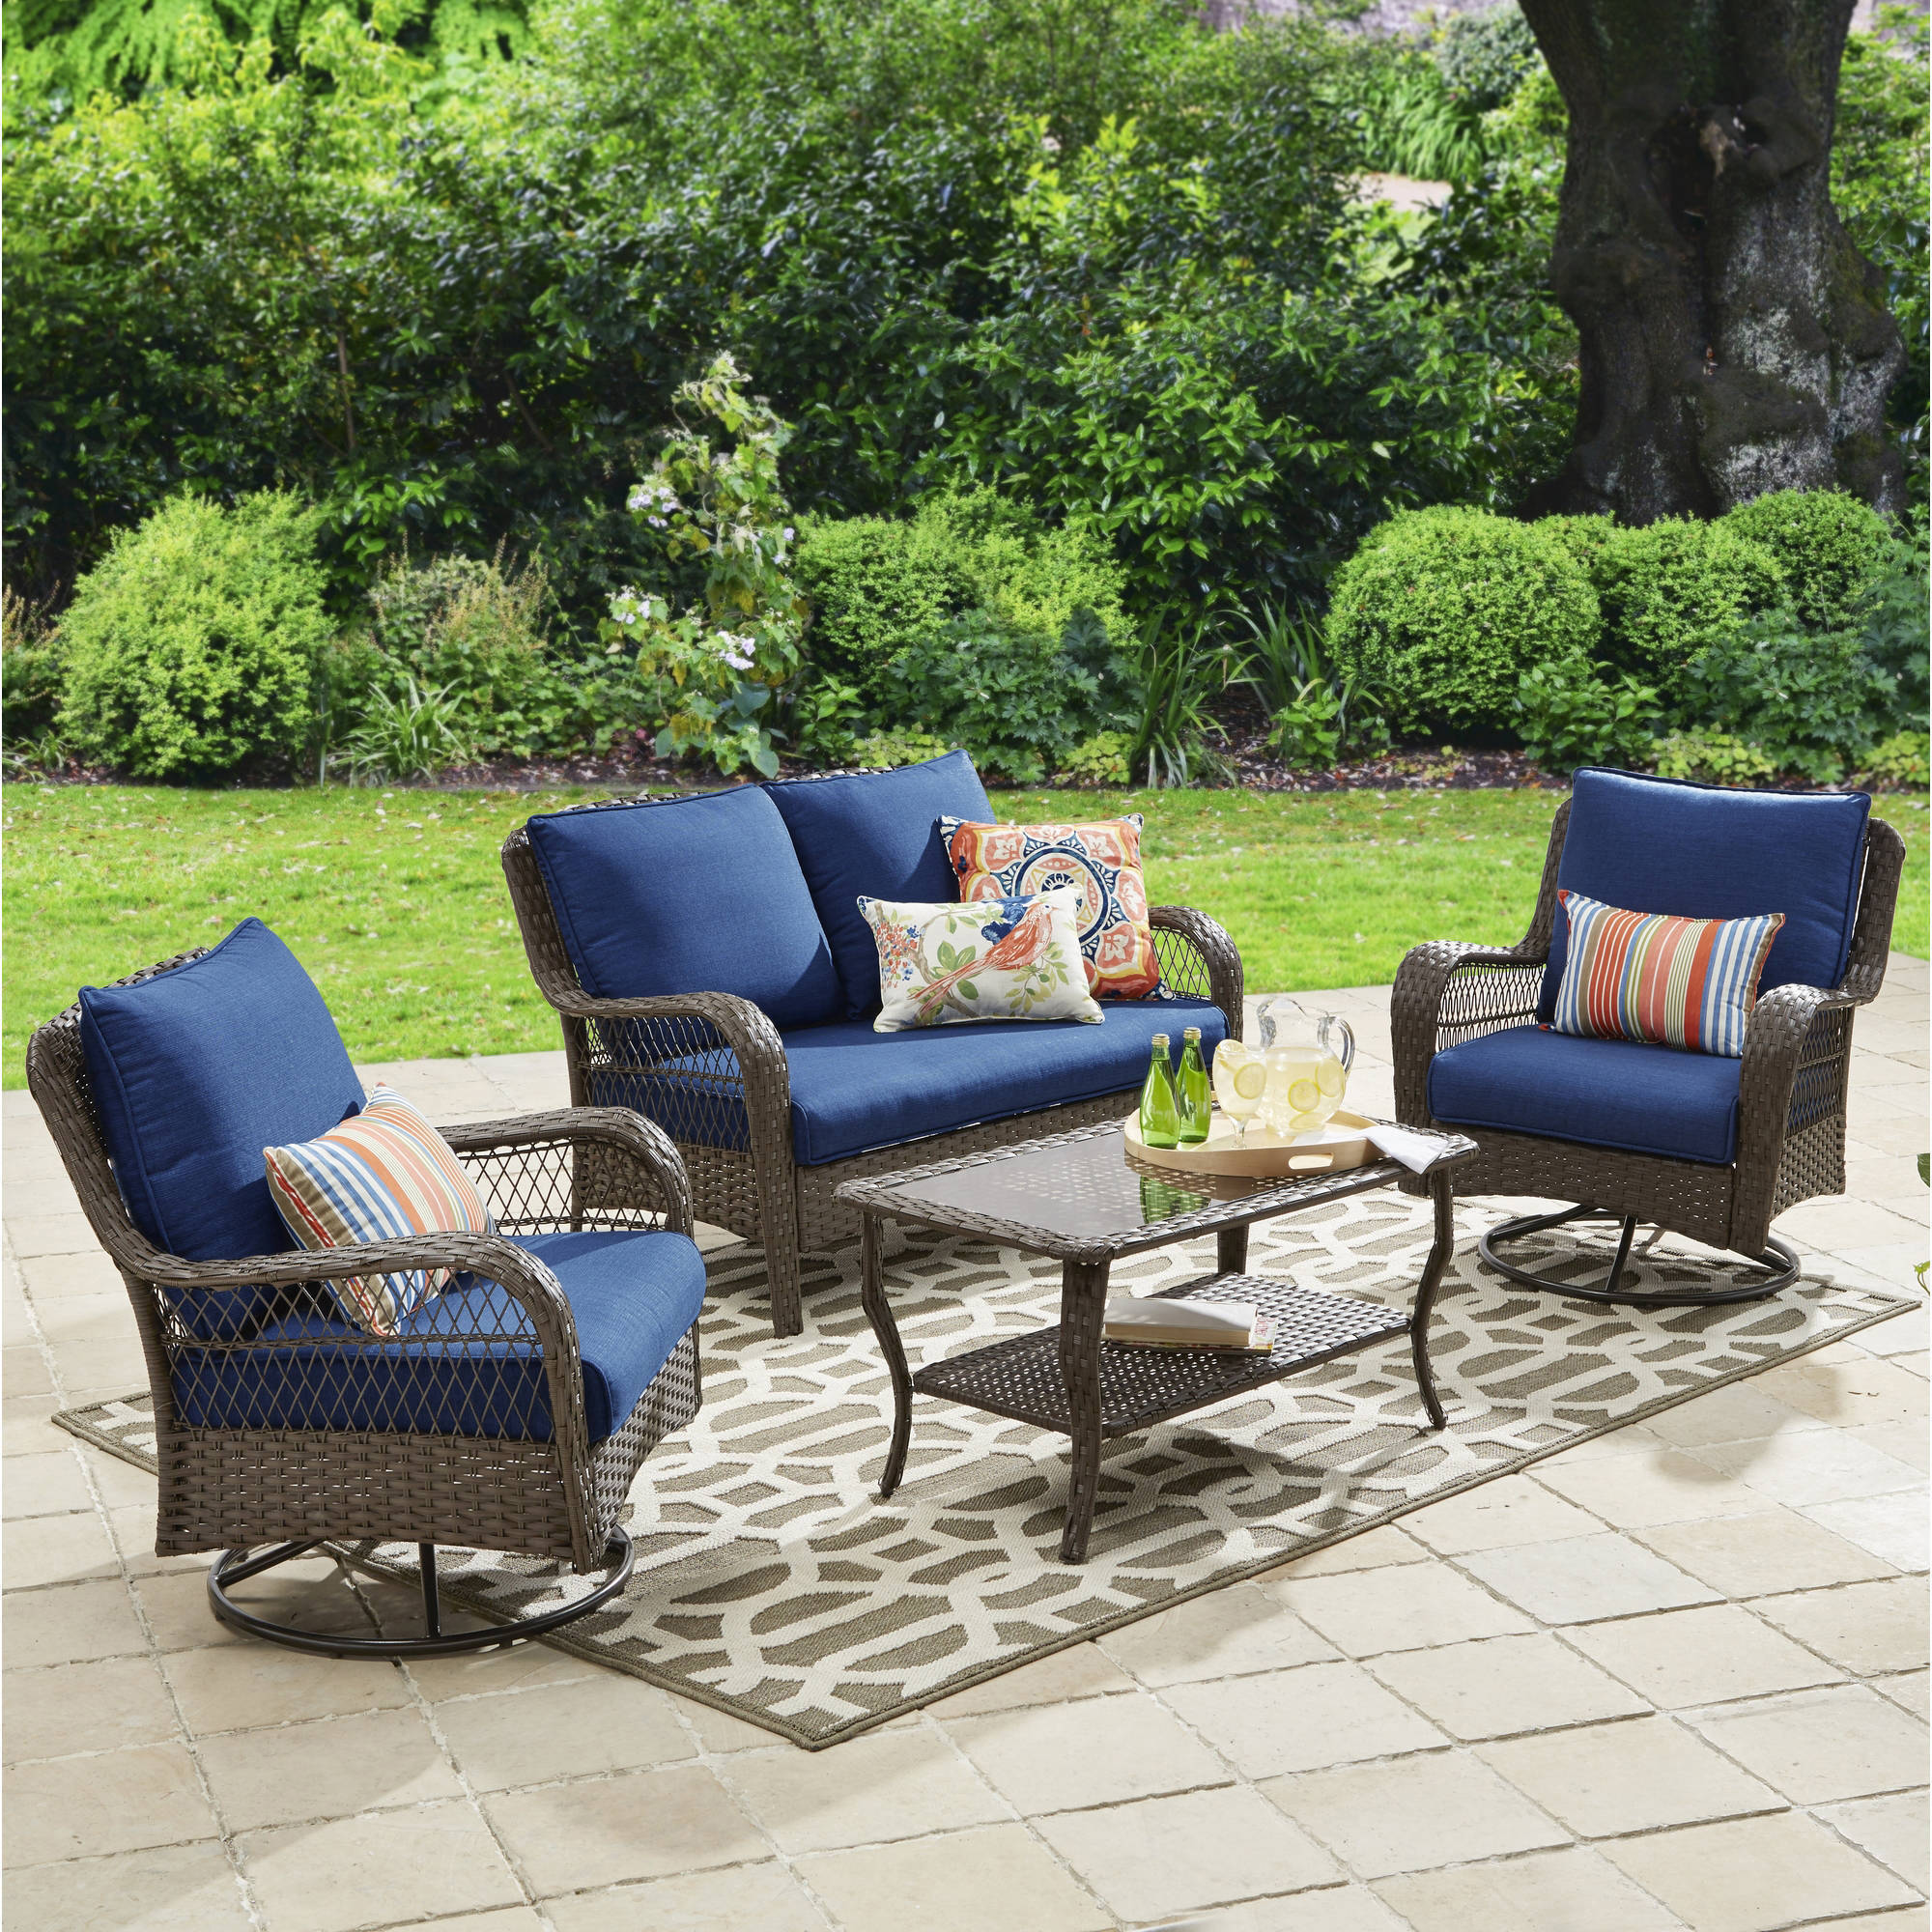 outdoor ca garden cascade dp k black sets amazon rope piece set pcs weave furniture corliving in patio lawn